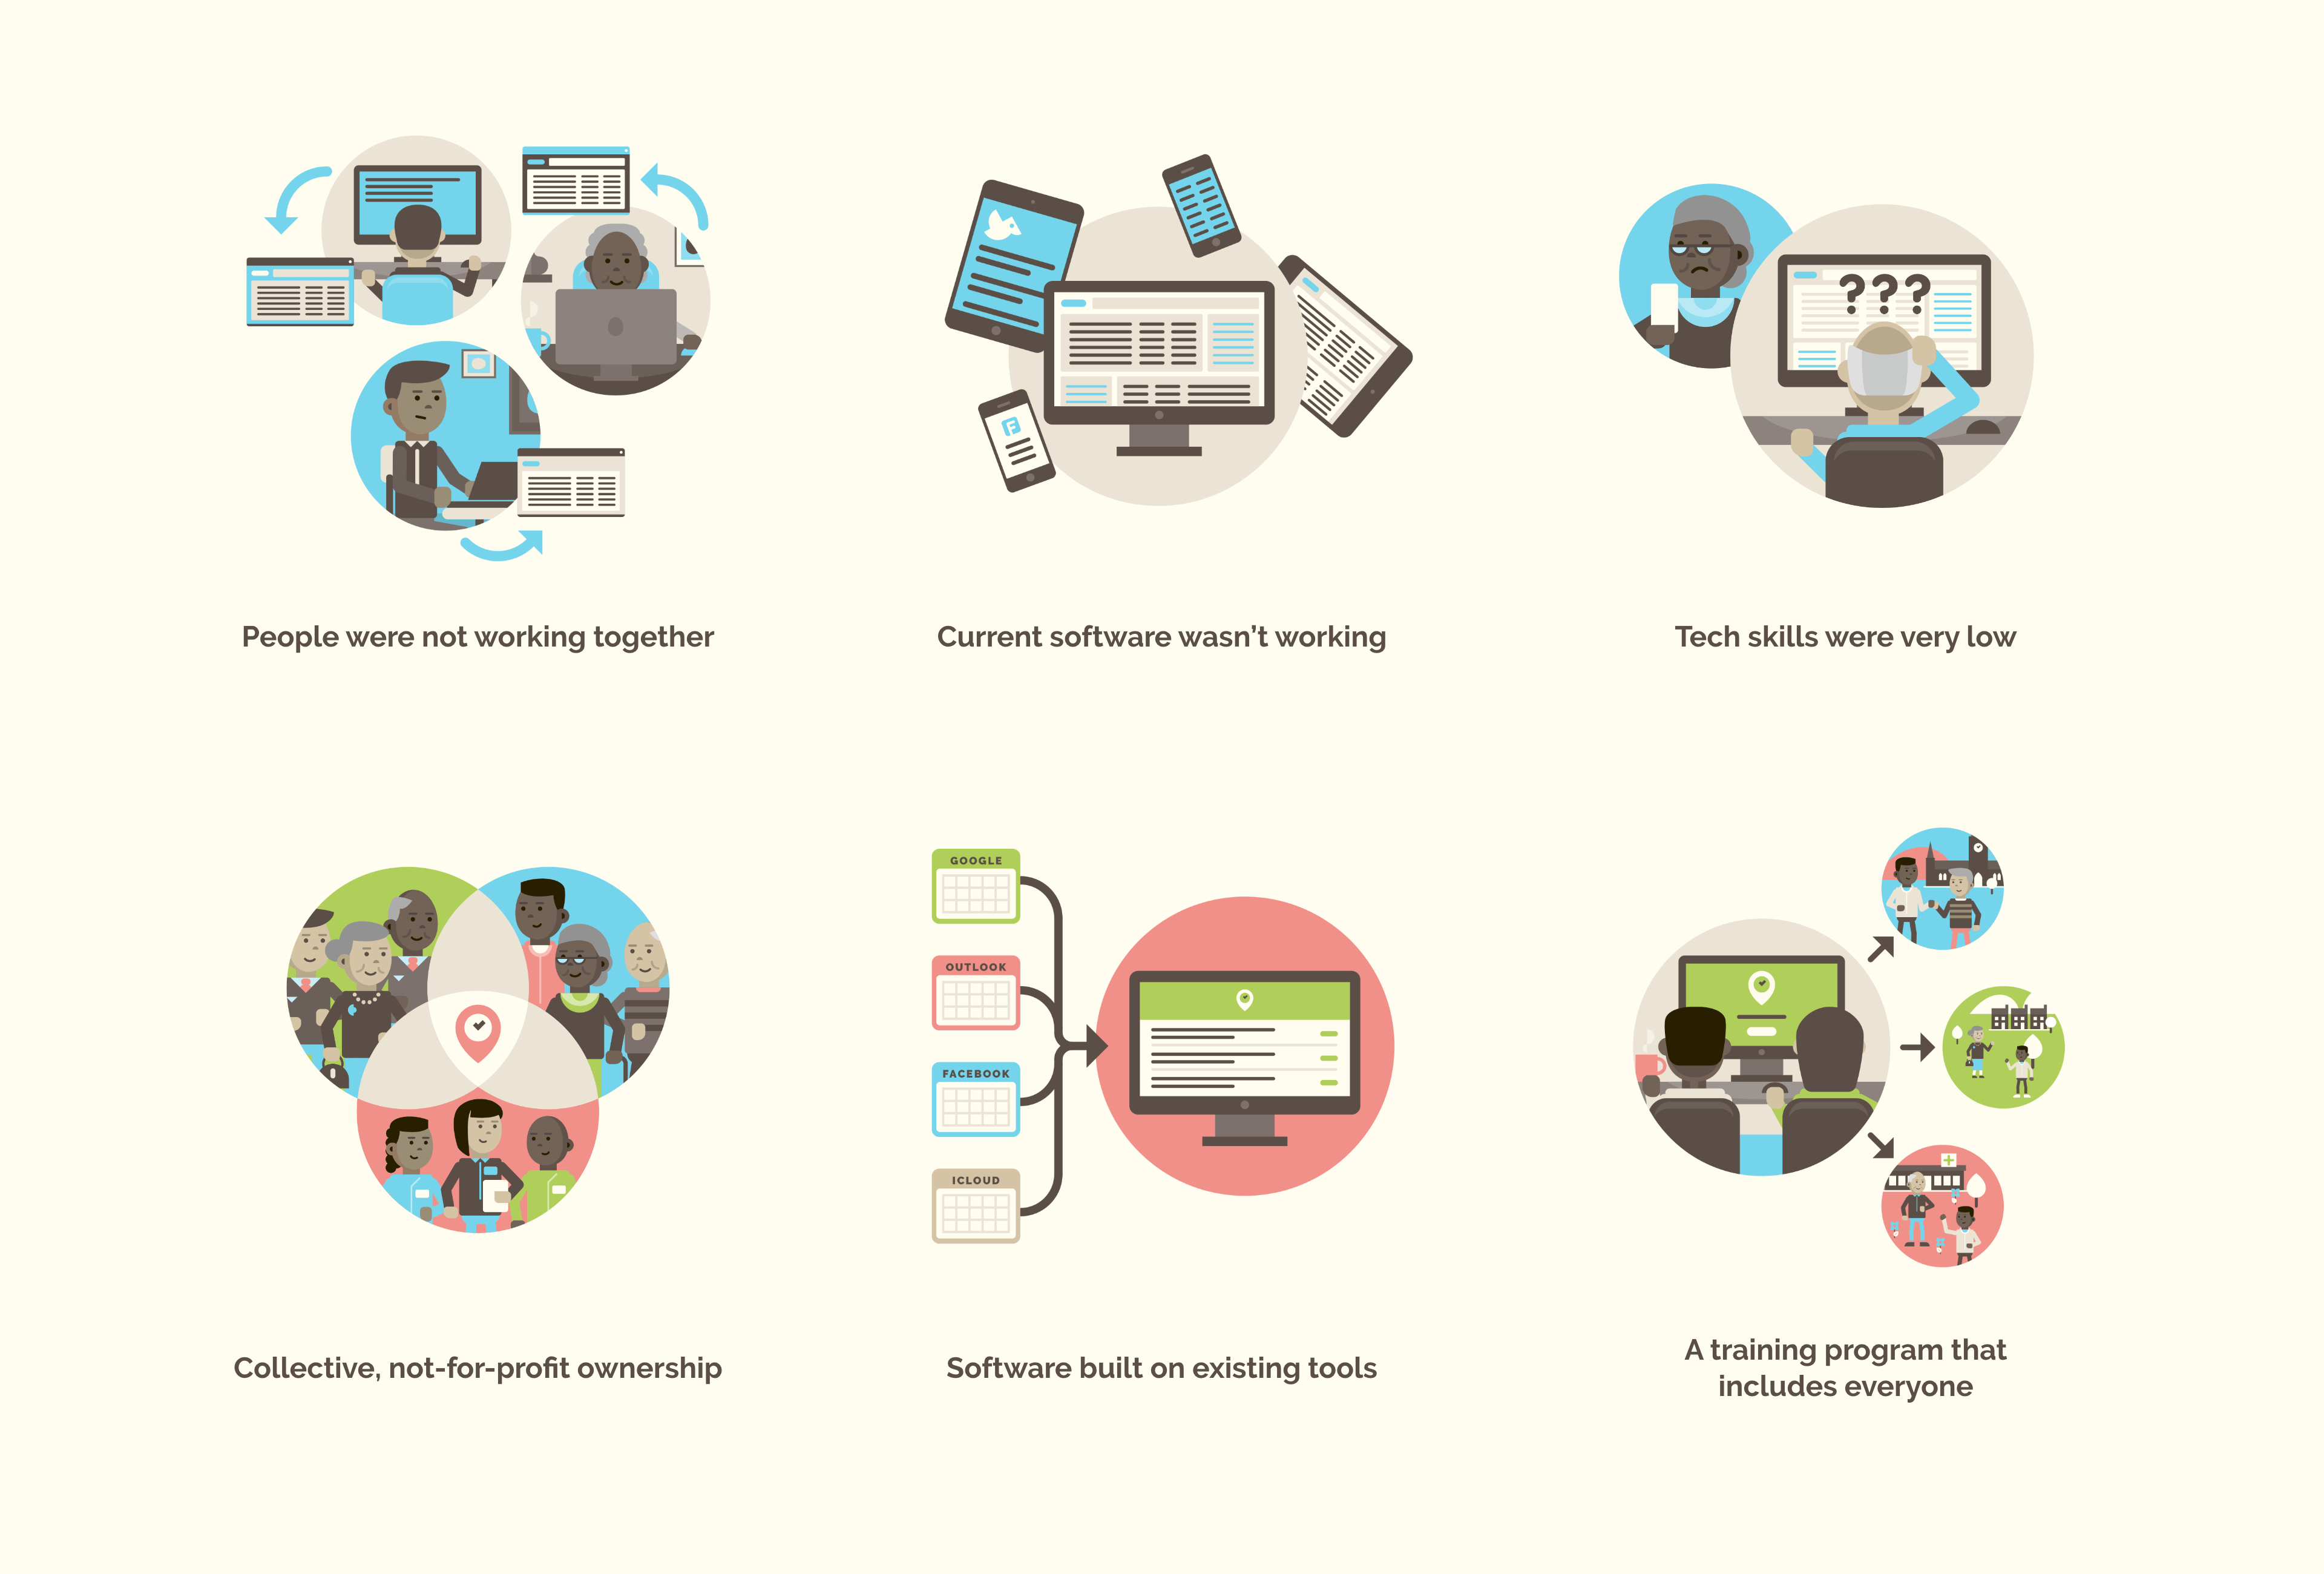 Six illustrations highlighting three issues and three solutions that PlaceCal faced and helps to overcome. People not working together, resolved by collective, not-for-profit ownership. Current software wasn't working, solved by Software built on existing tools. Tech skills were very low, solved by A training program that includes everyone.